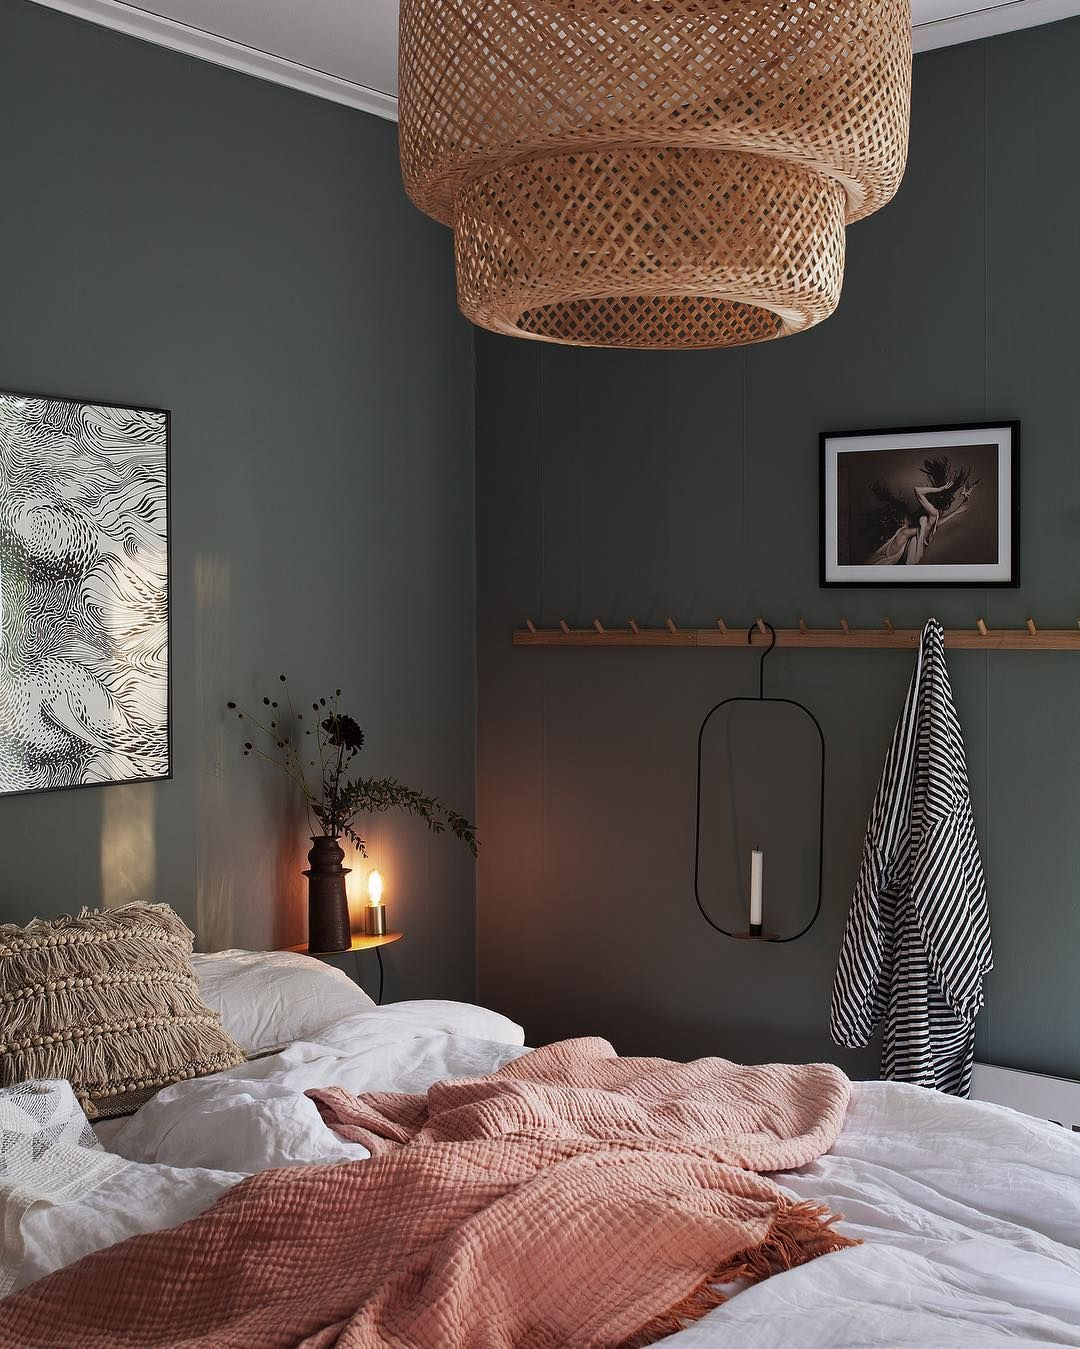 A moody green bedroom with natural wood accents.